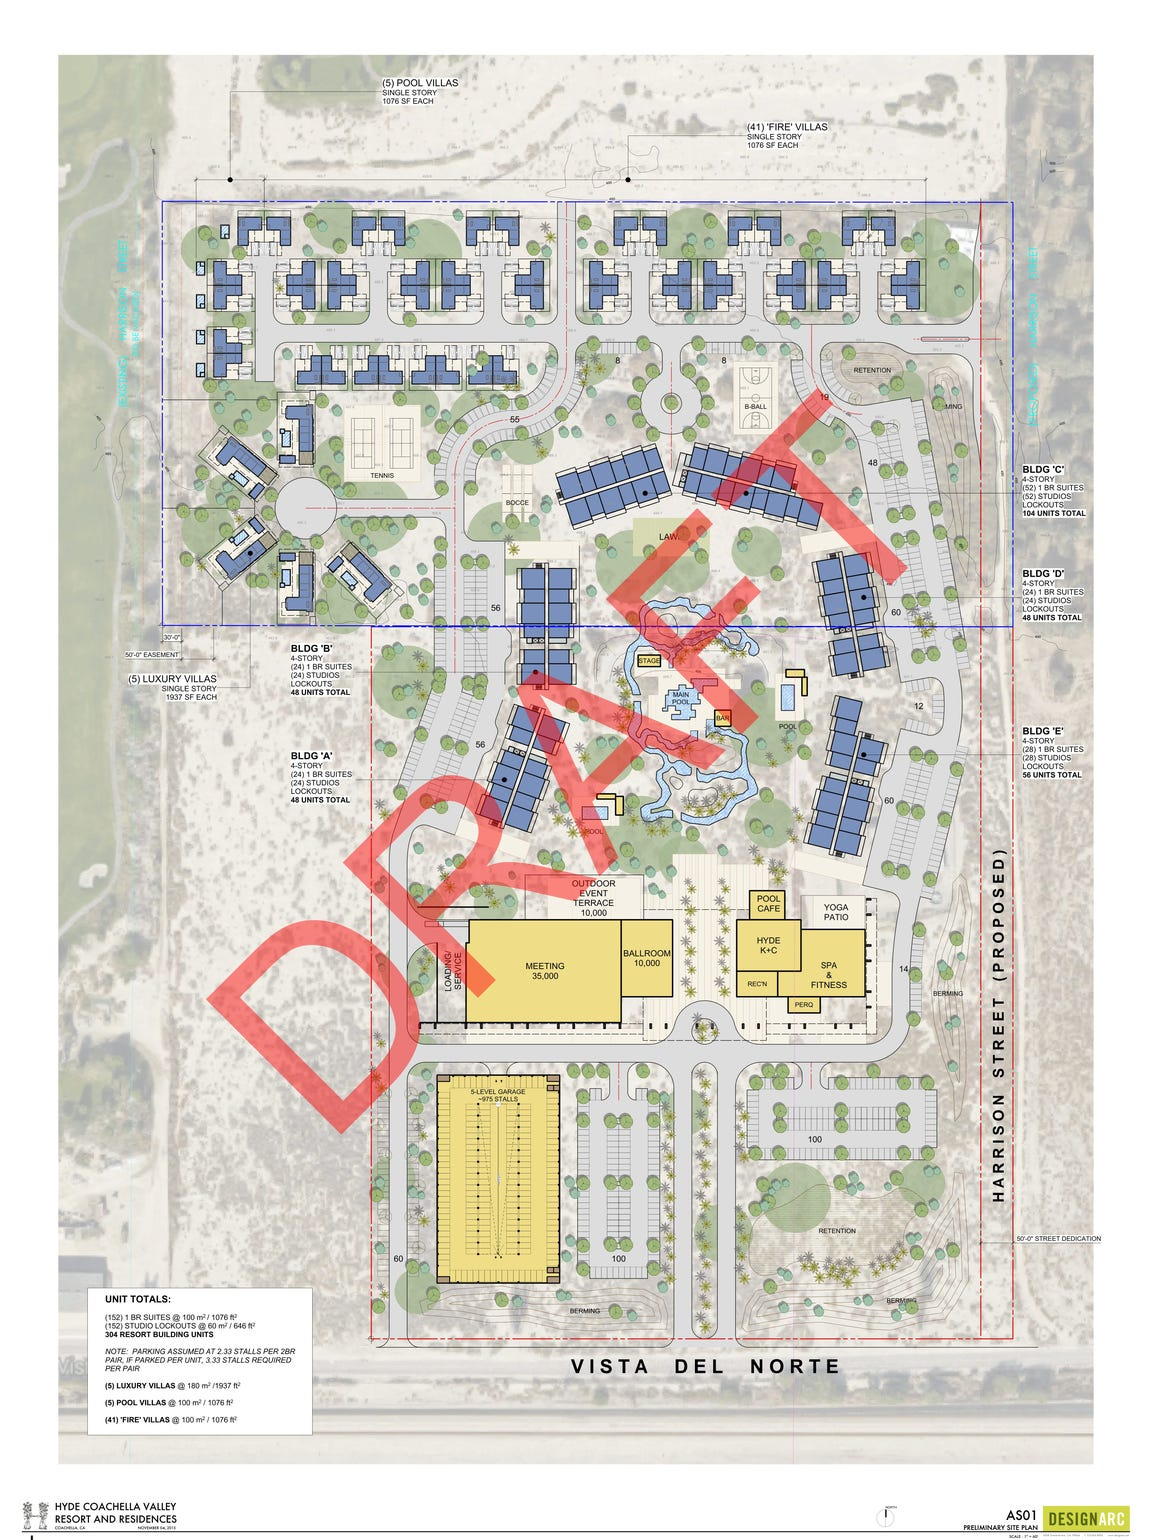 A site plan for Hyde Coachella Valley Resorts and Residences